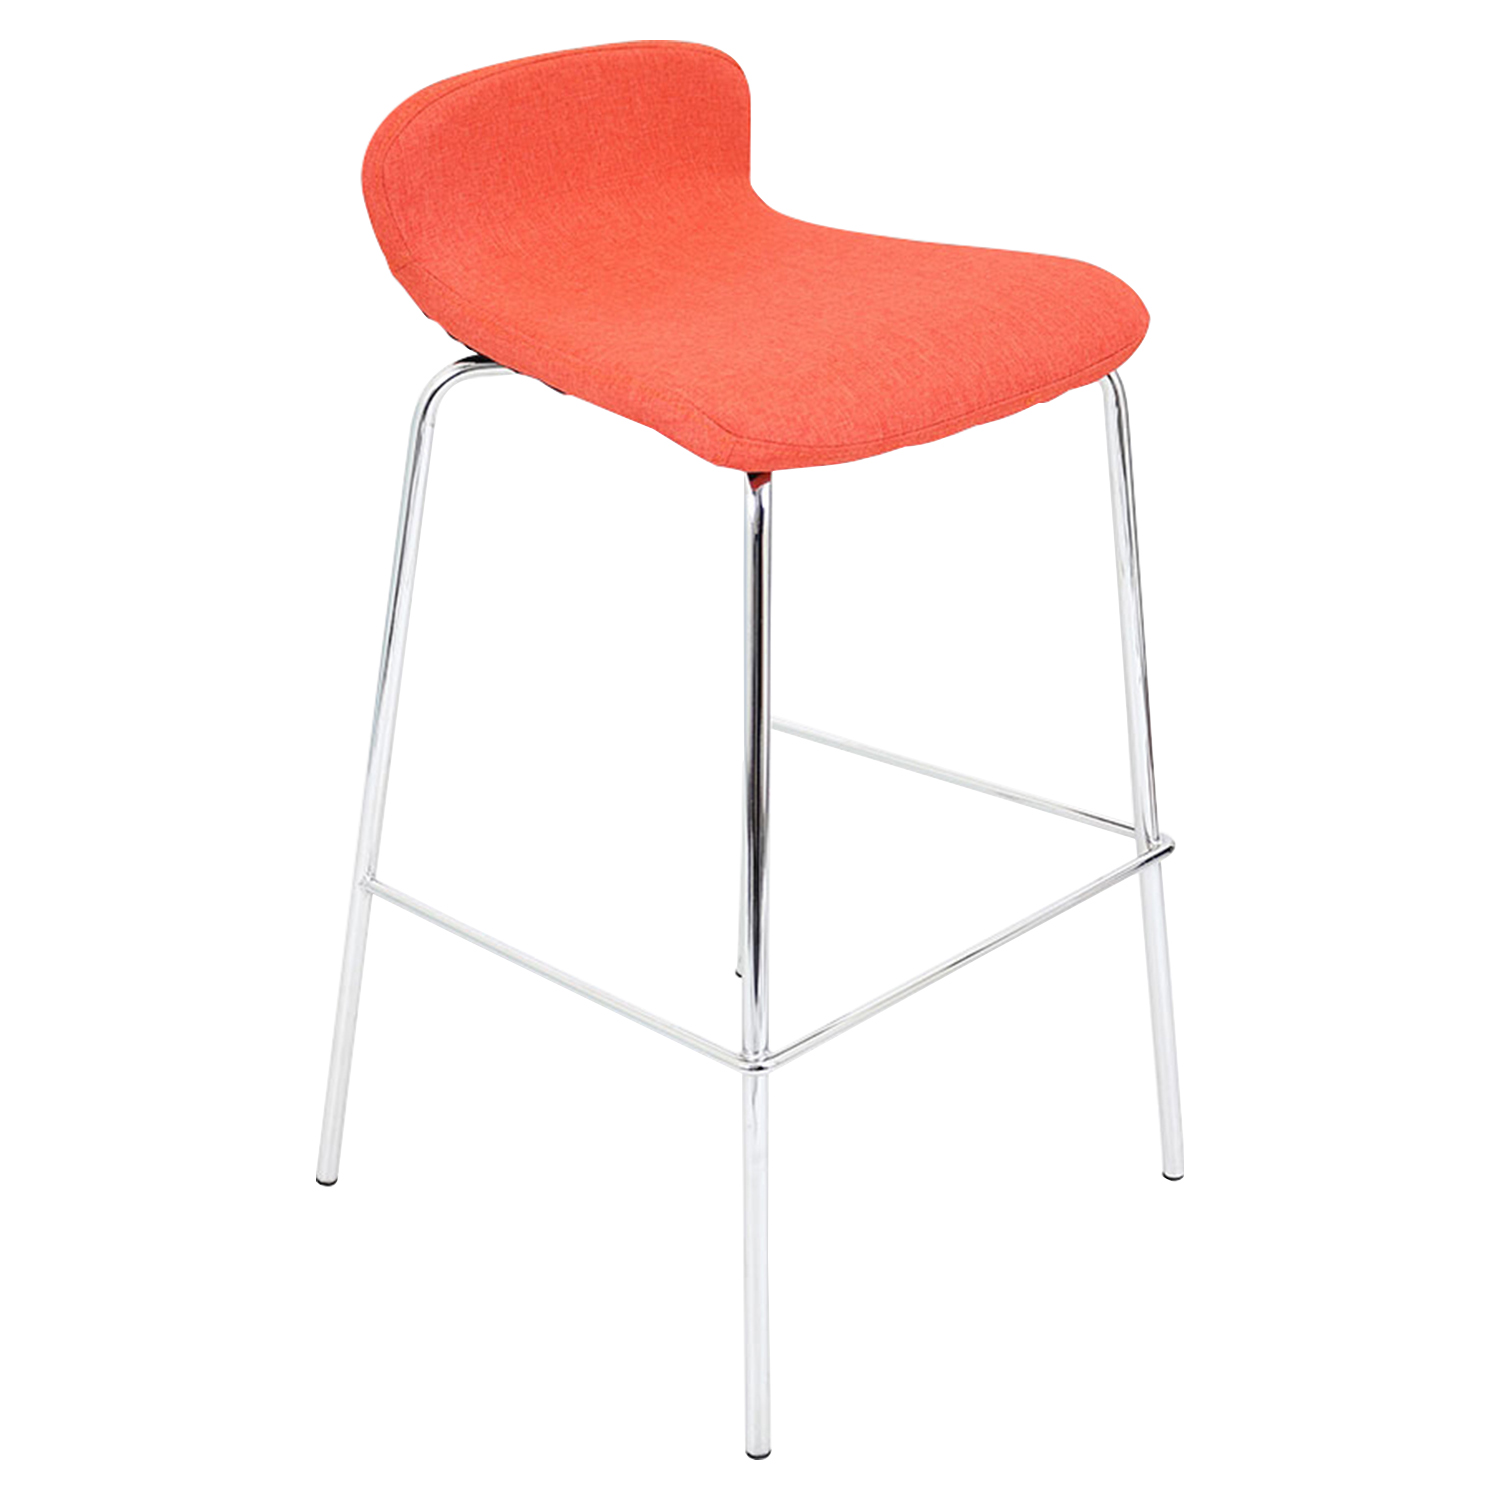 Fabric Stacker Stackable Barstool - Orange (Set of 3) - LMS-BS-TW-FSTK-OR3